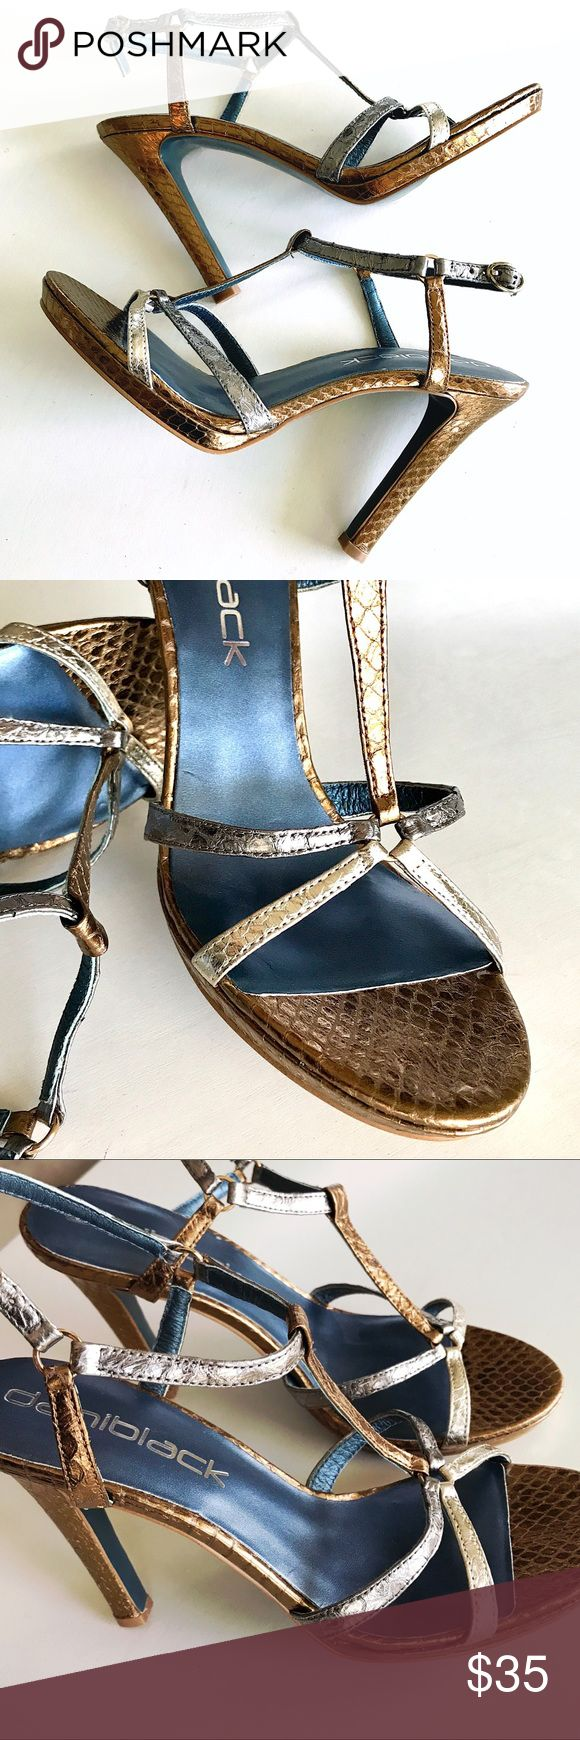 DANIBLACK Metallic Strappy High Heel Sandals 8 Like New! Only worn for an hour. Adjustable ankle strap. Color: bronze, silver, & pewter. Embossed snakeskin pattern. Smoke and pet free. daniblack Shoes Heels